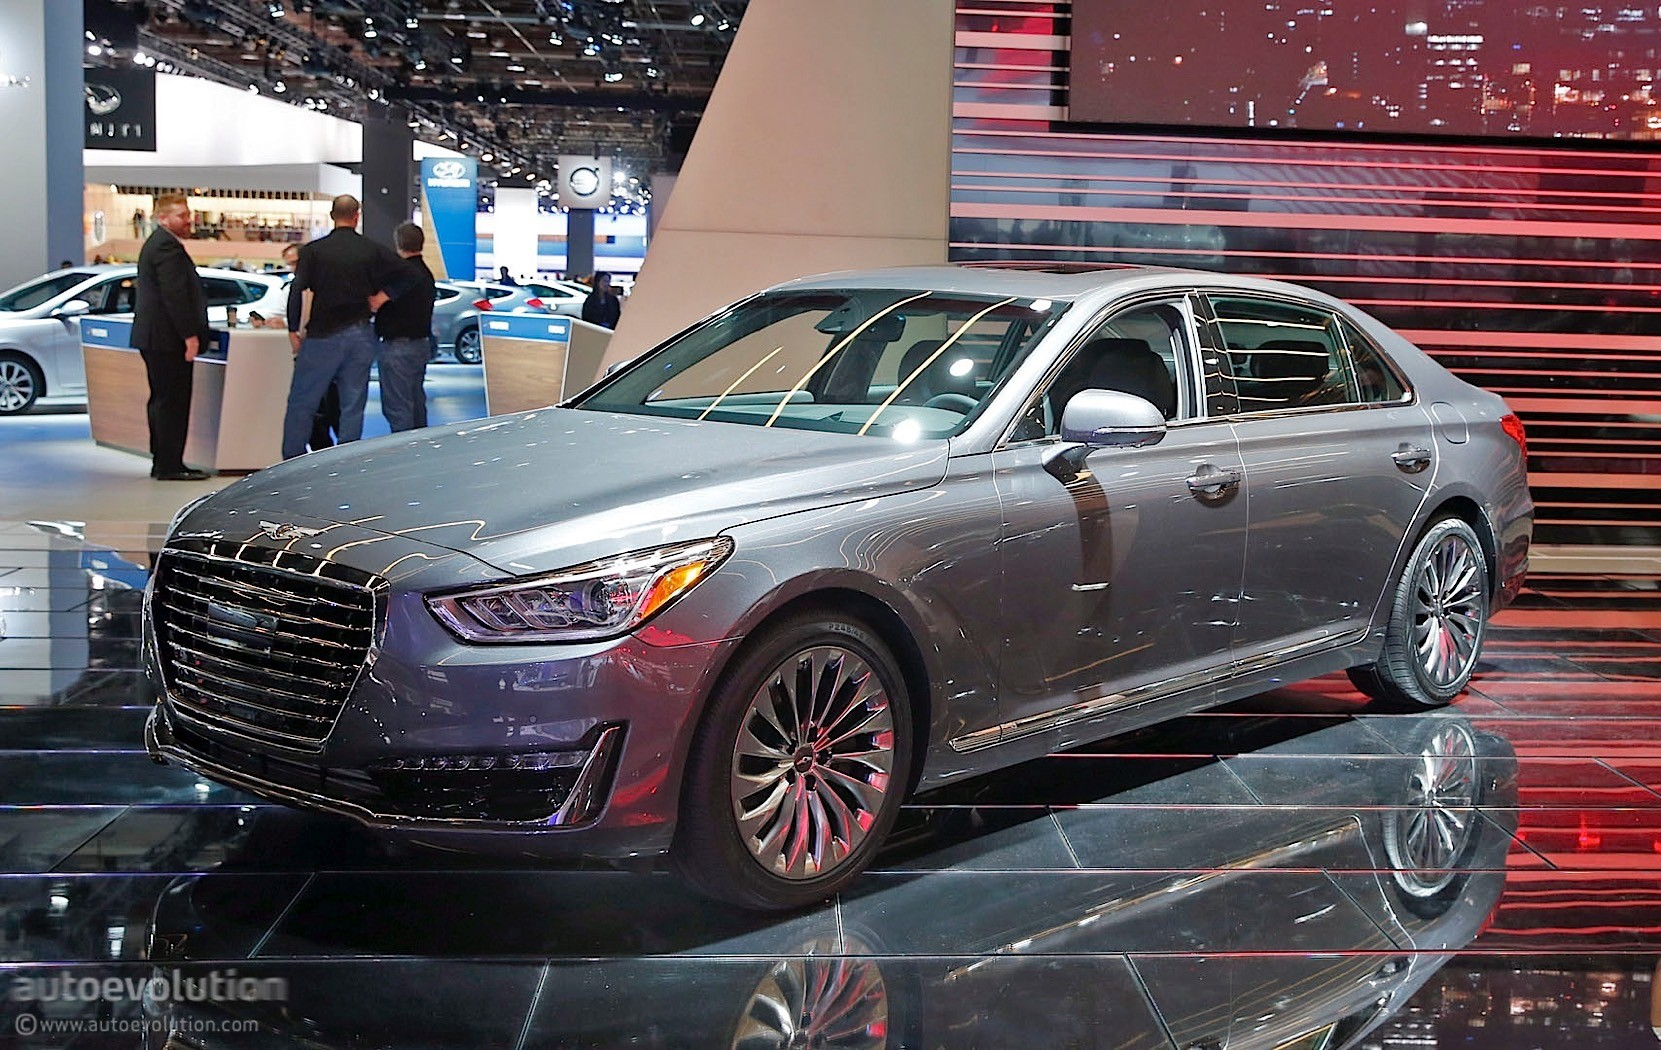 genesis brings g90 luxury sedan at the 2016 detroit auto show autoevolution. Black Bedroom Furniture Sets. Home Design Ideas